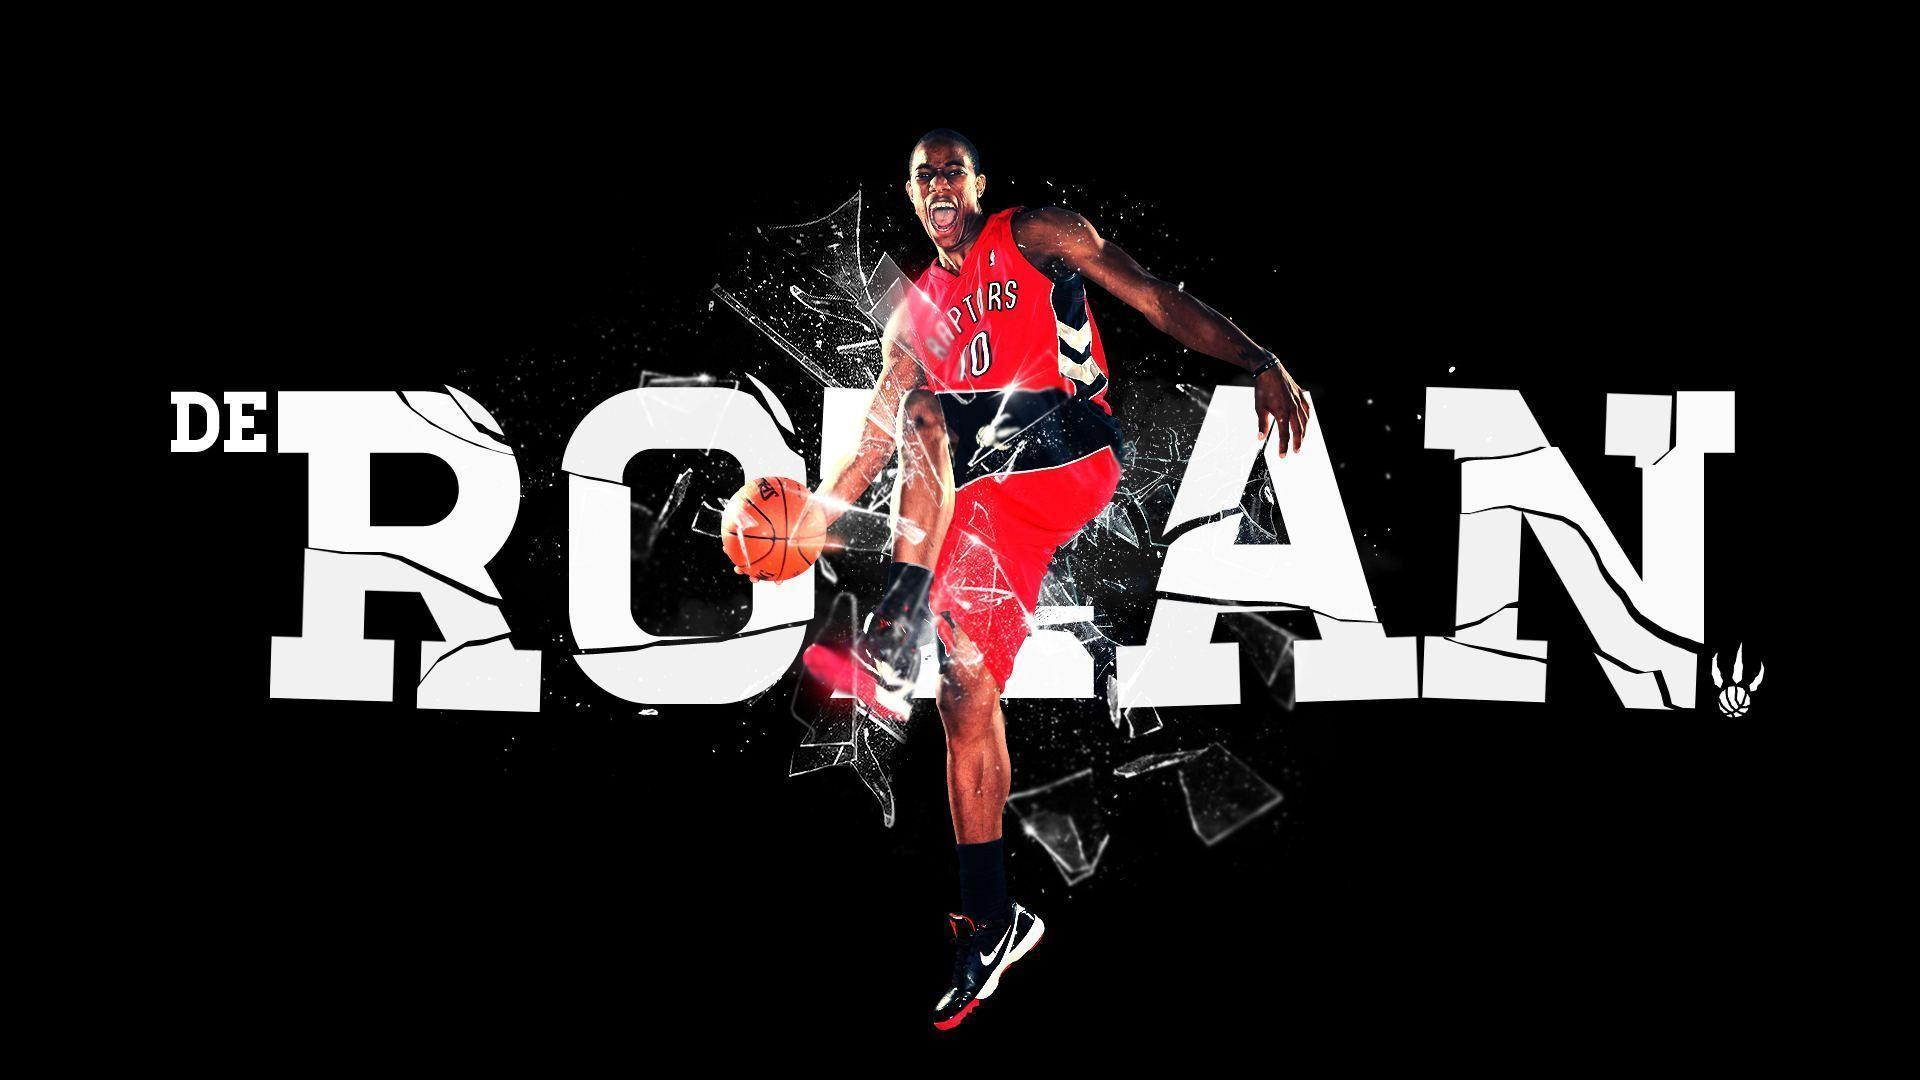 DeMar DeRozan Wallpapers HD Collection For Free Download